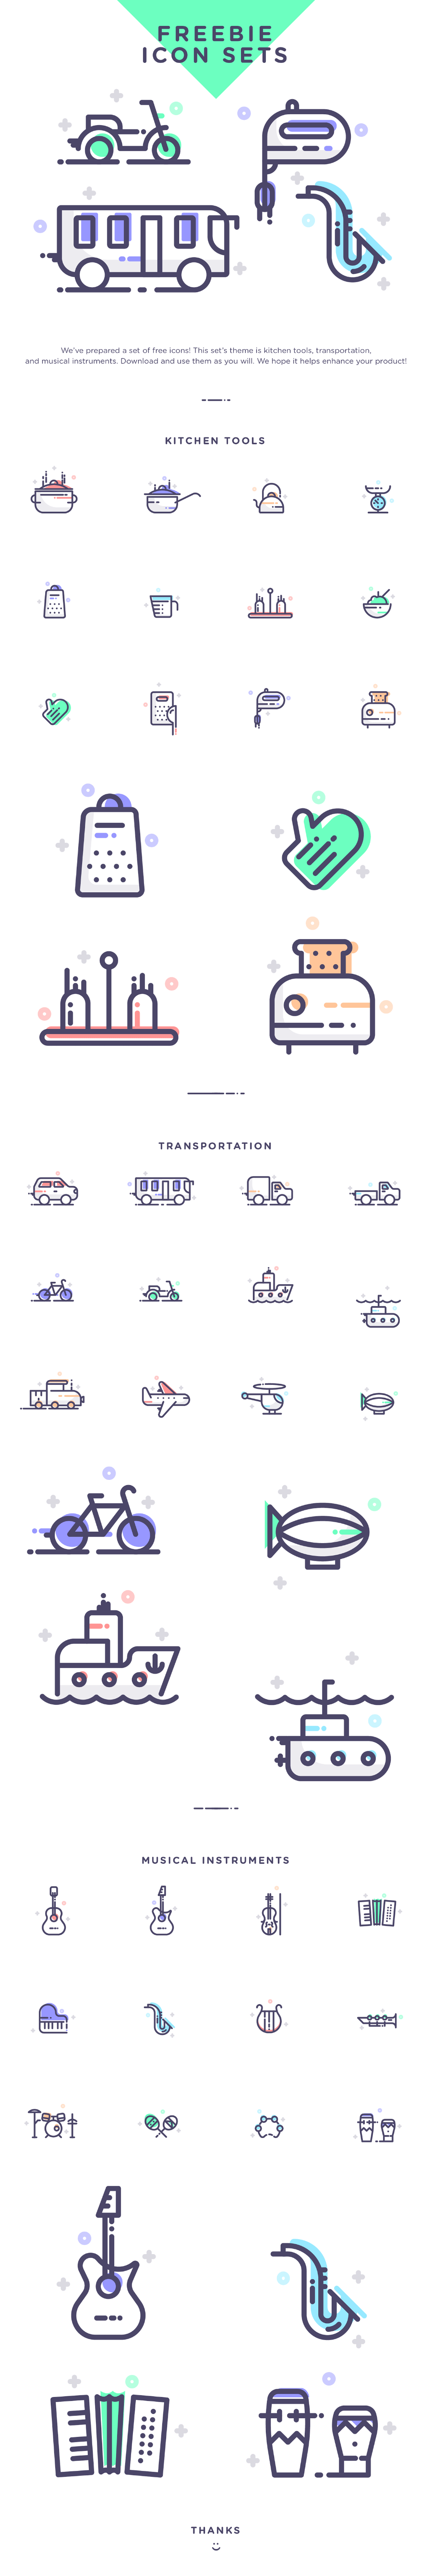 freebie-icon-set